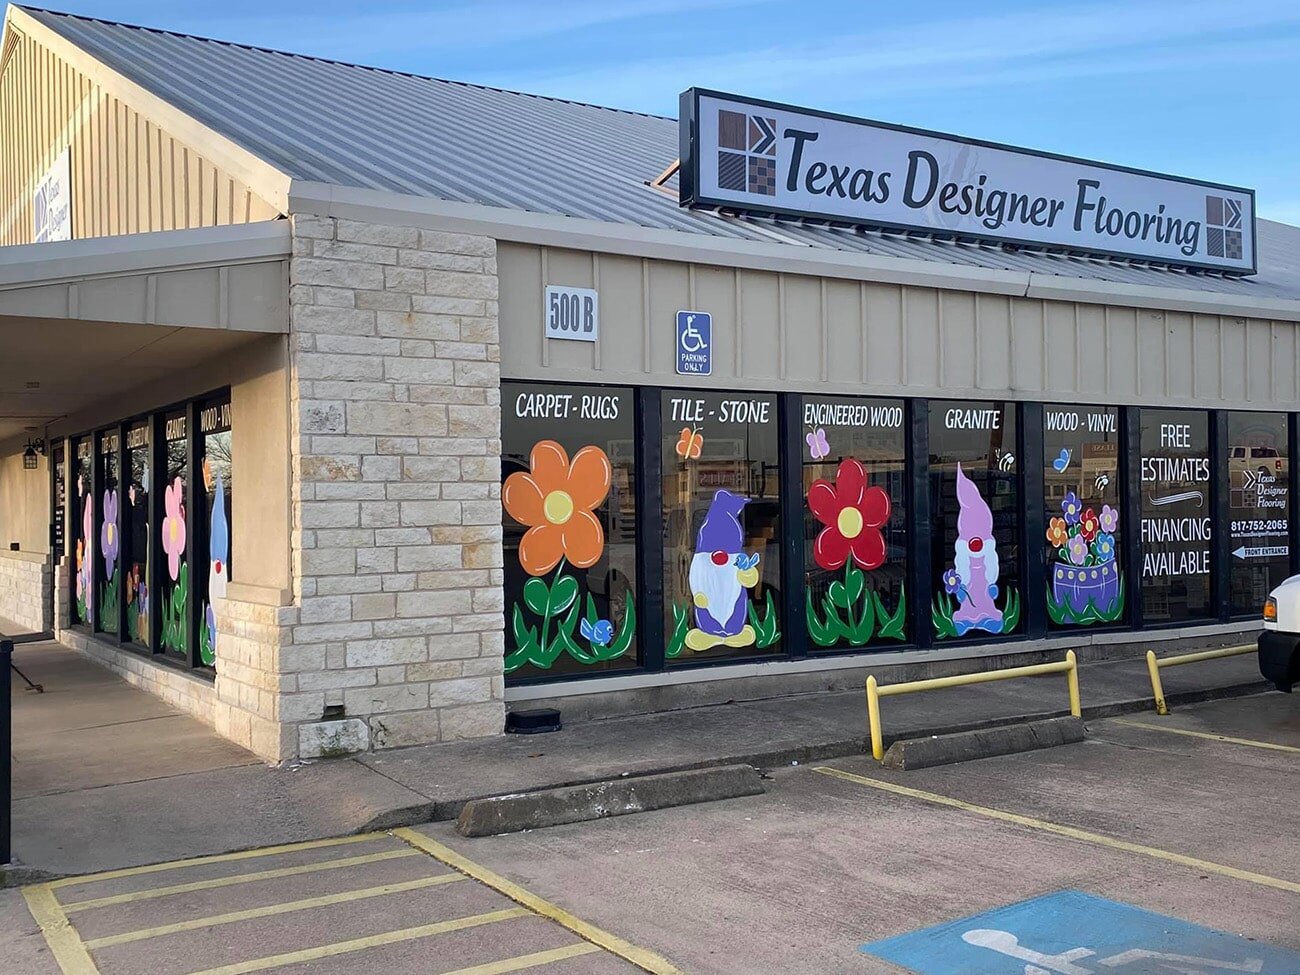 Come visit our Azle location for all your flooring needs at Texas Designer Flooring!